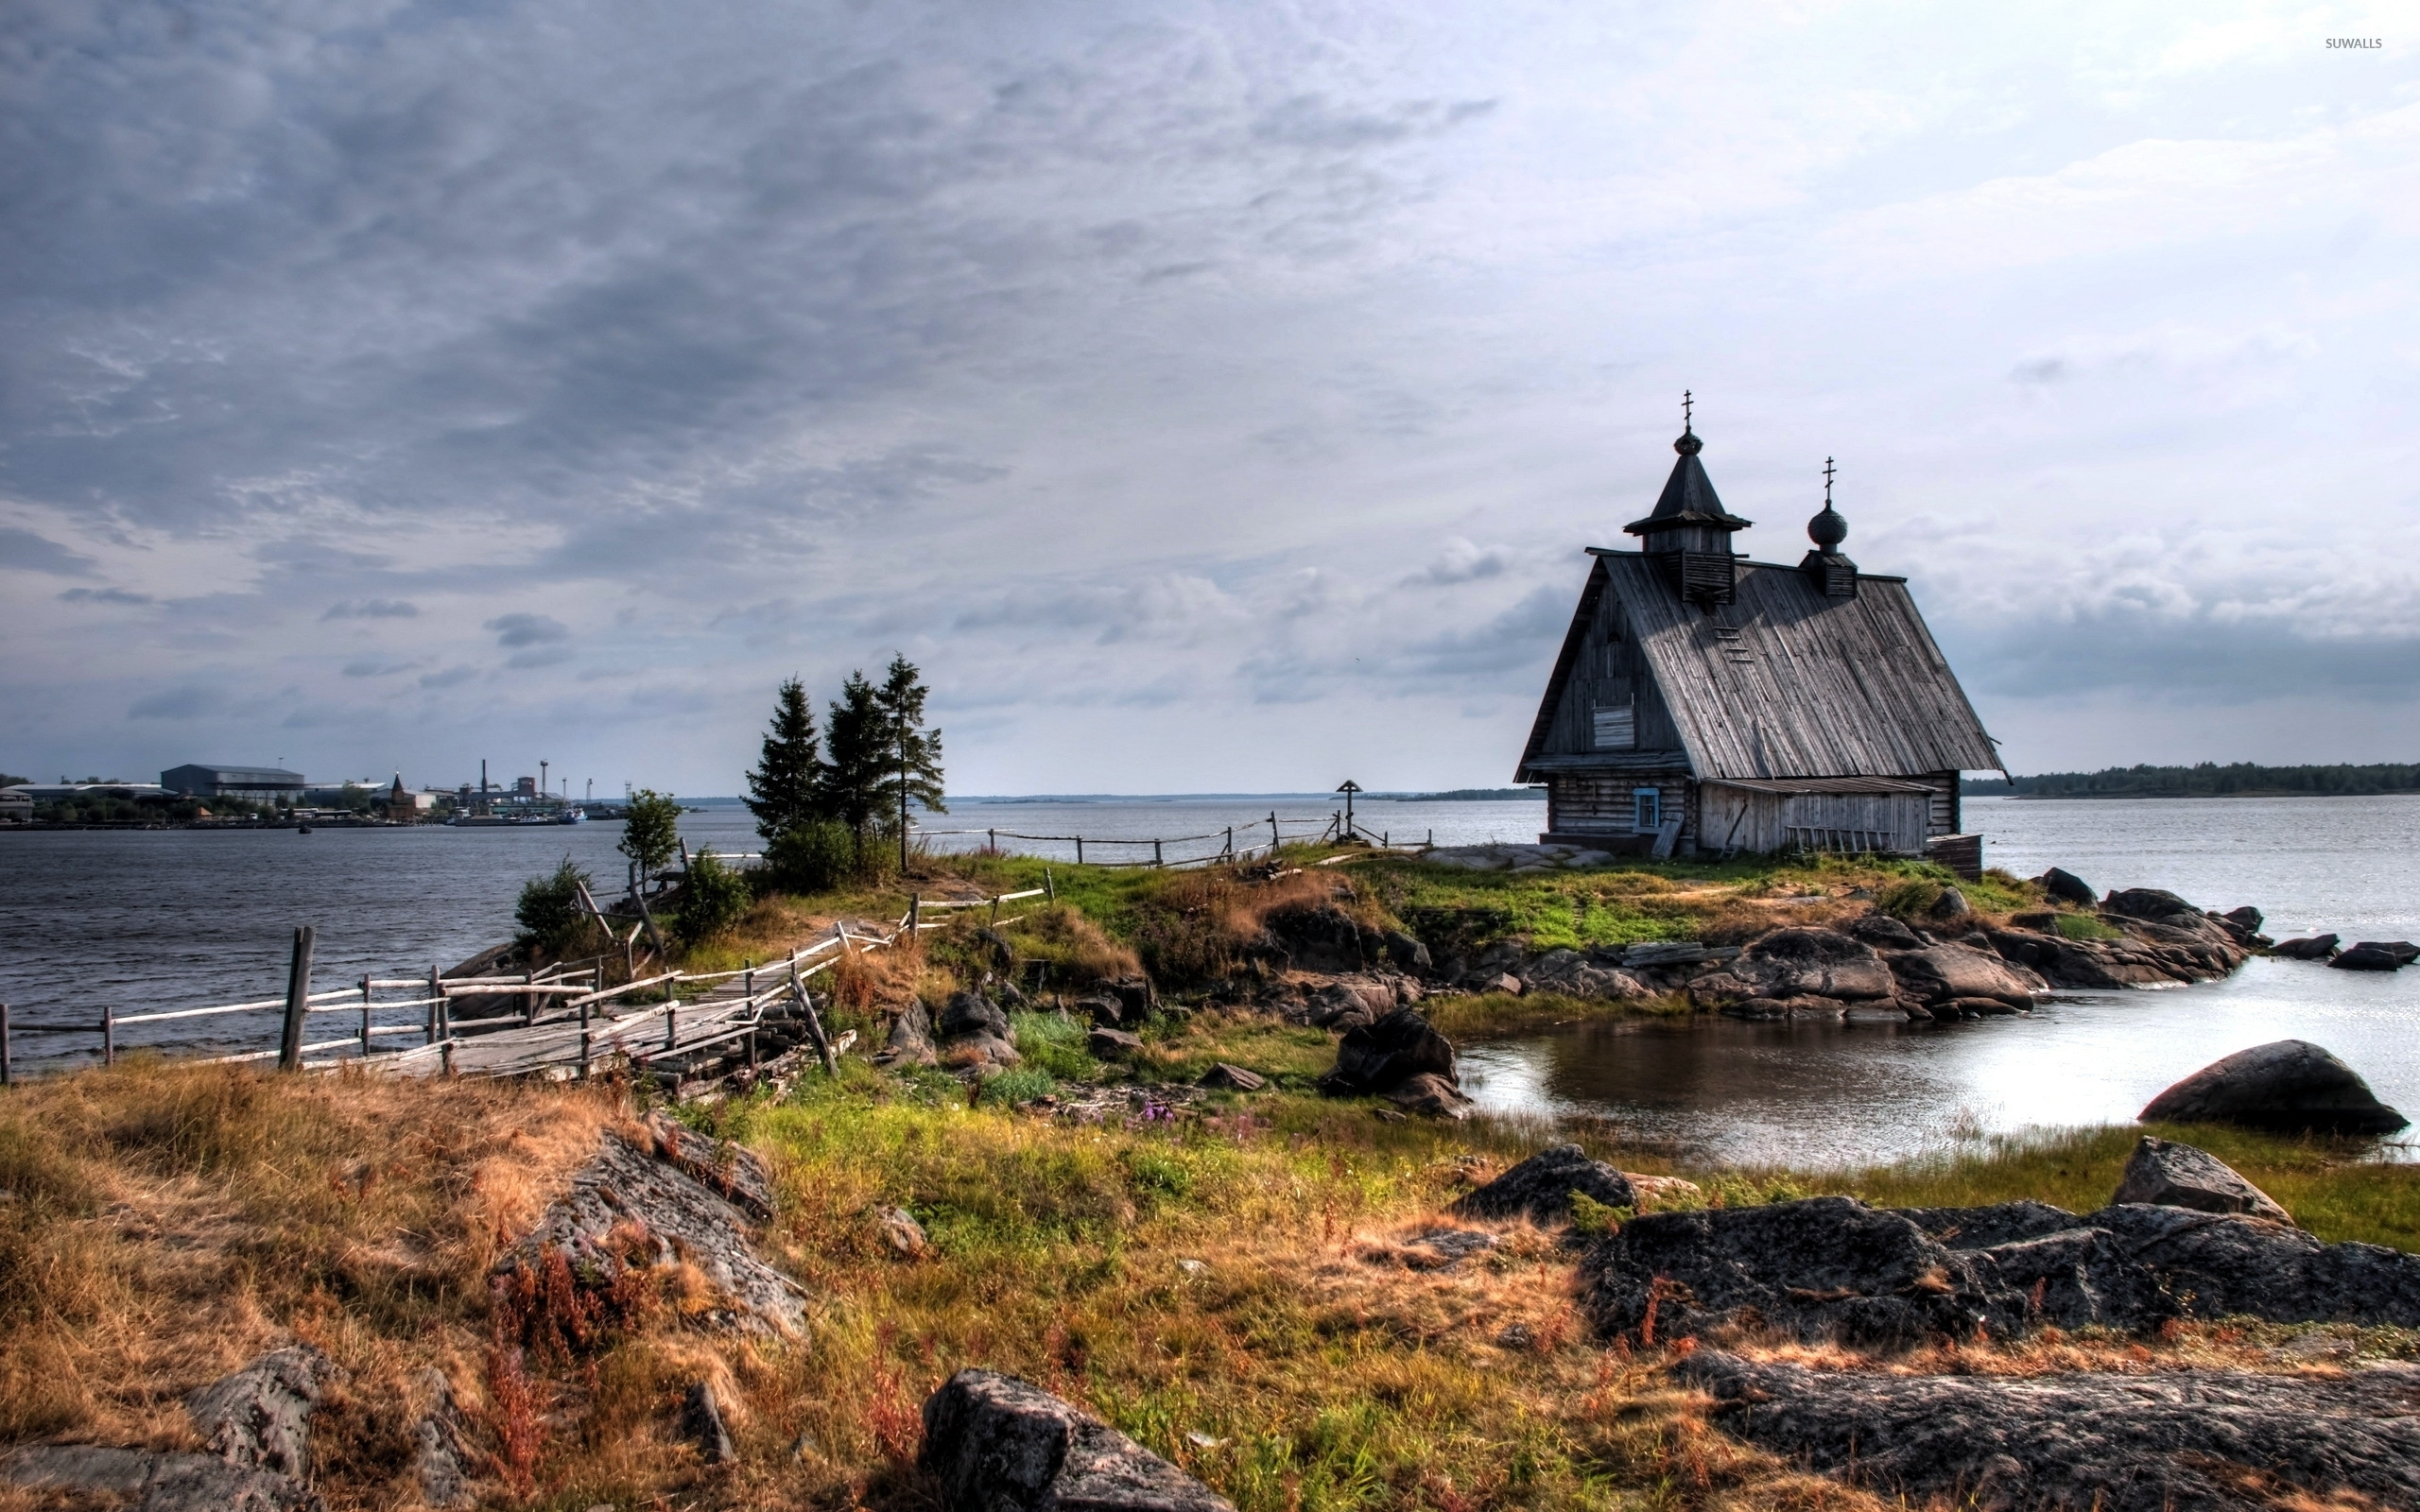 Old-Small-House-On-The-Rocky-River-Shore-51339-2560×1600-Wallpaper